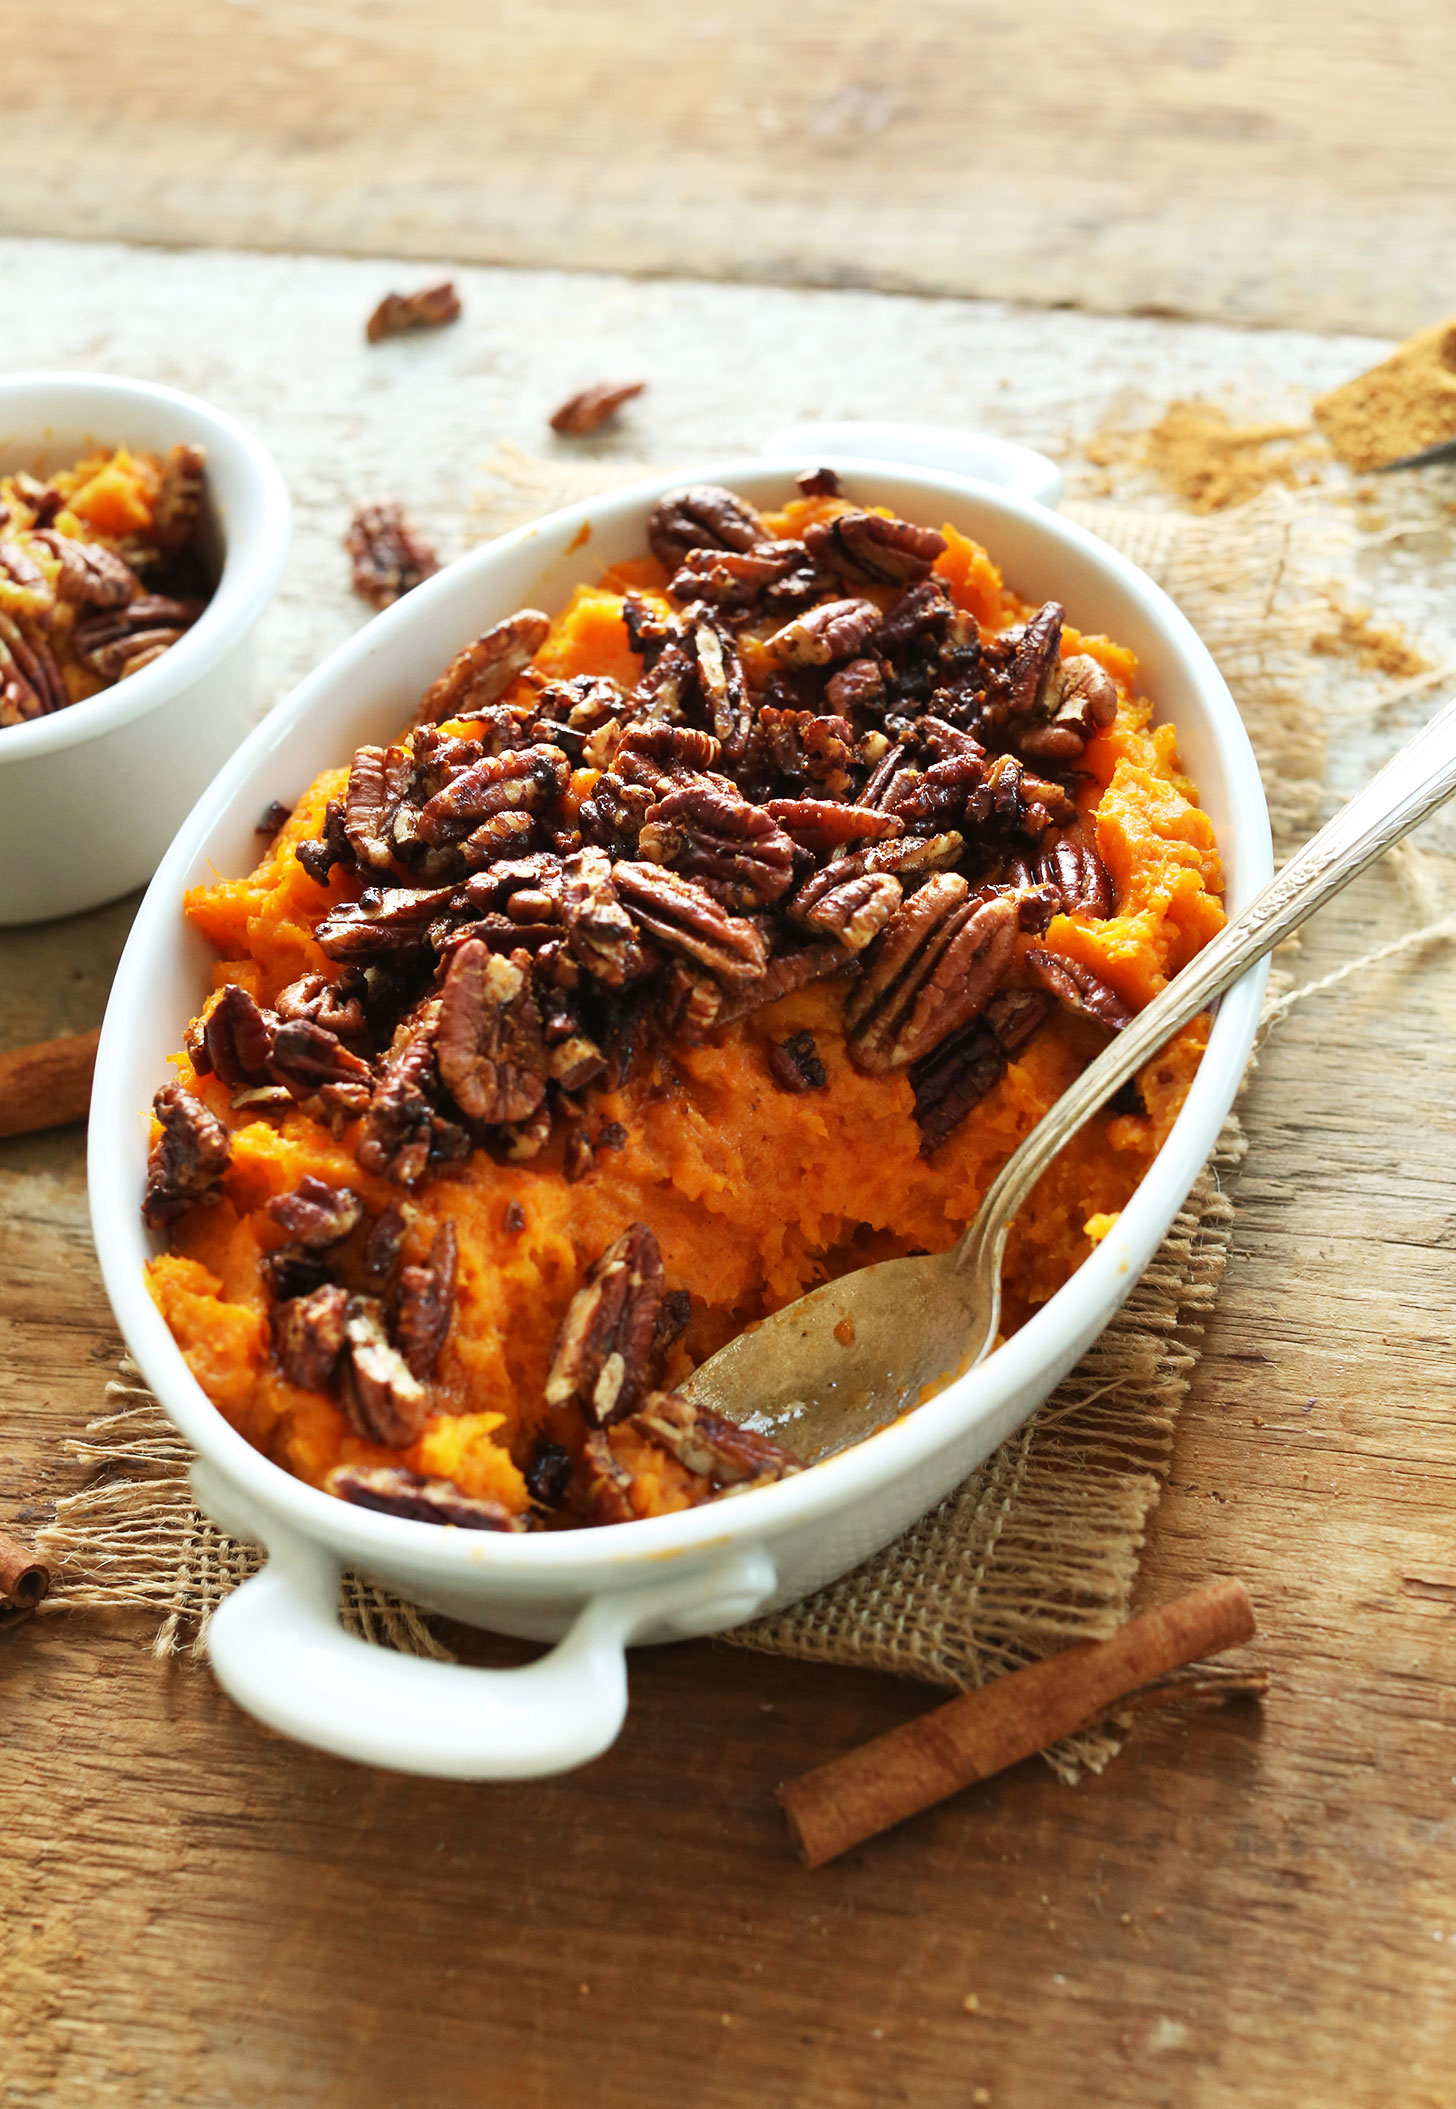 Gluten-free vegan fall recipe of Butternut Squash Sweet Potato Mash with Maple Cinnamon Pecans